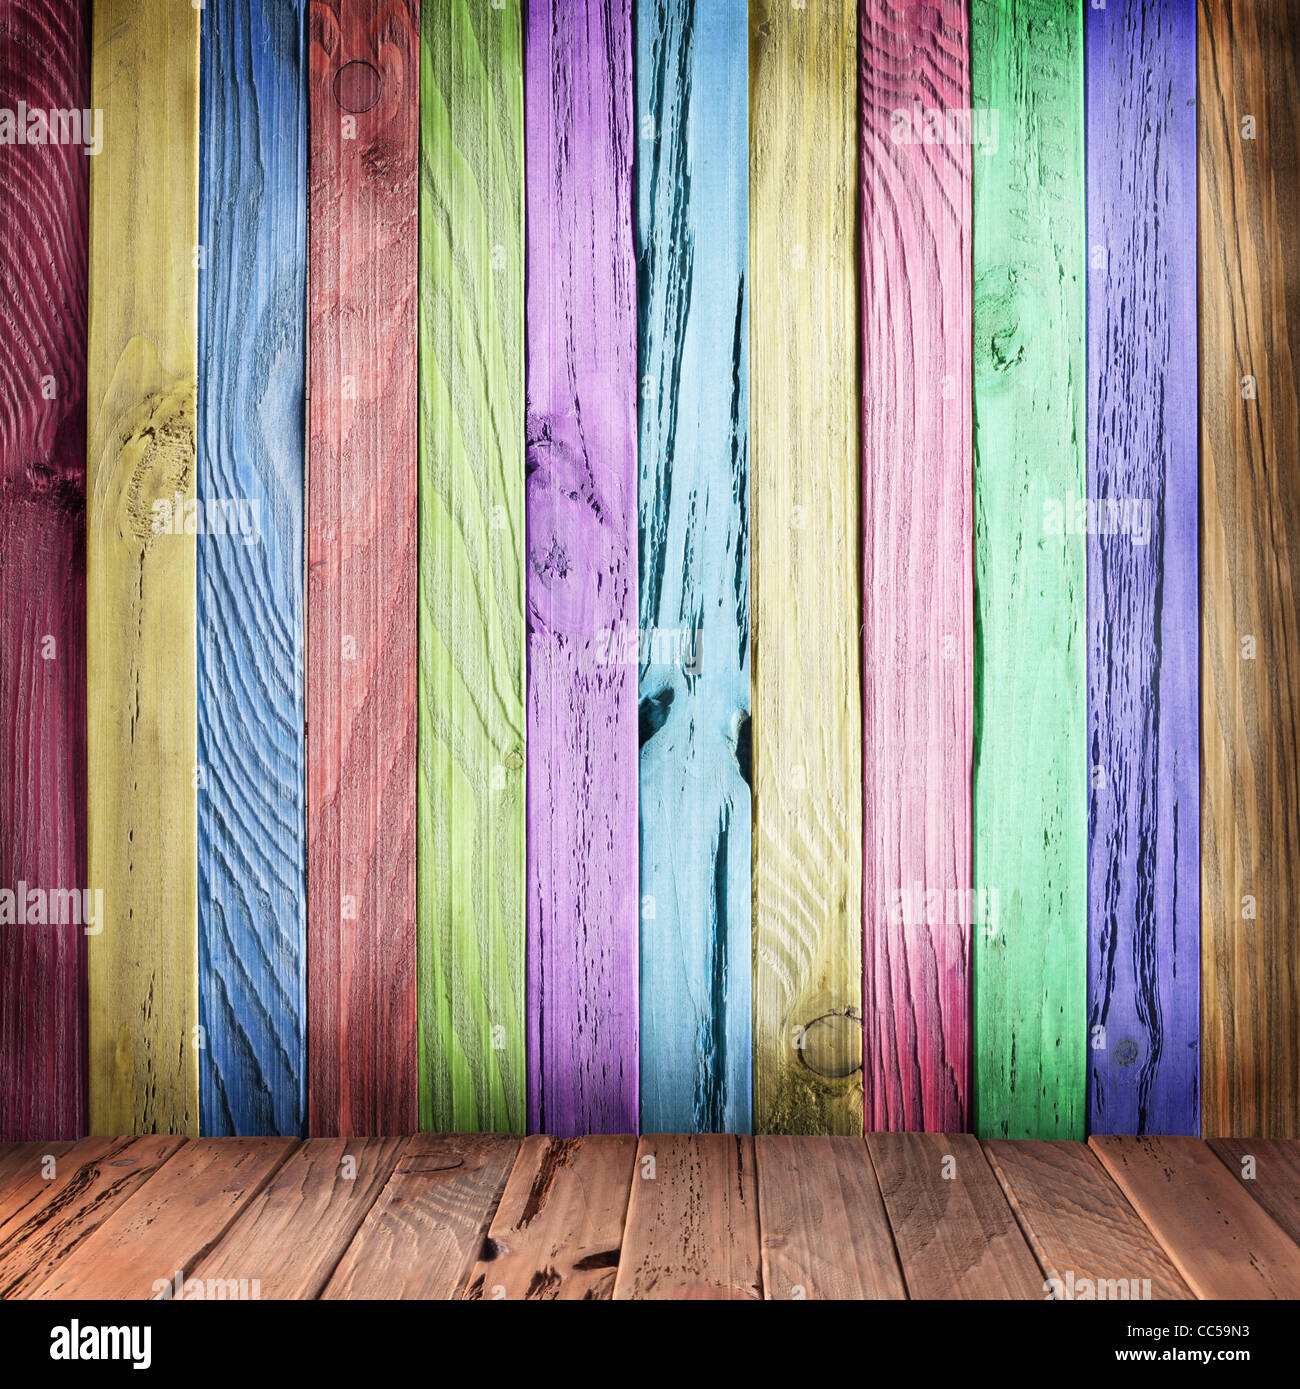 Multicolor wall of wooden planks. Vintage style. - Stock Image